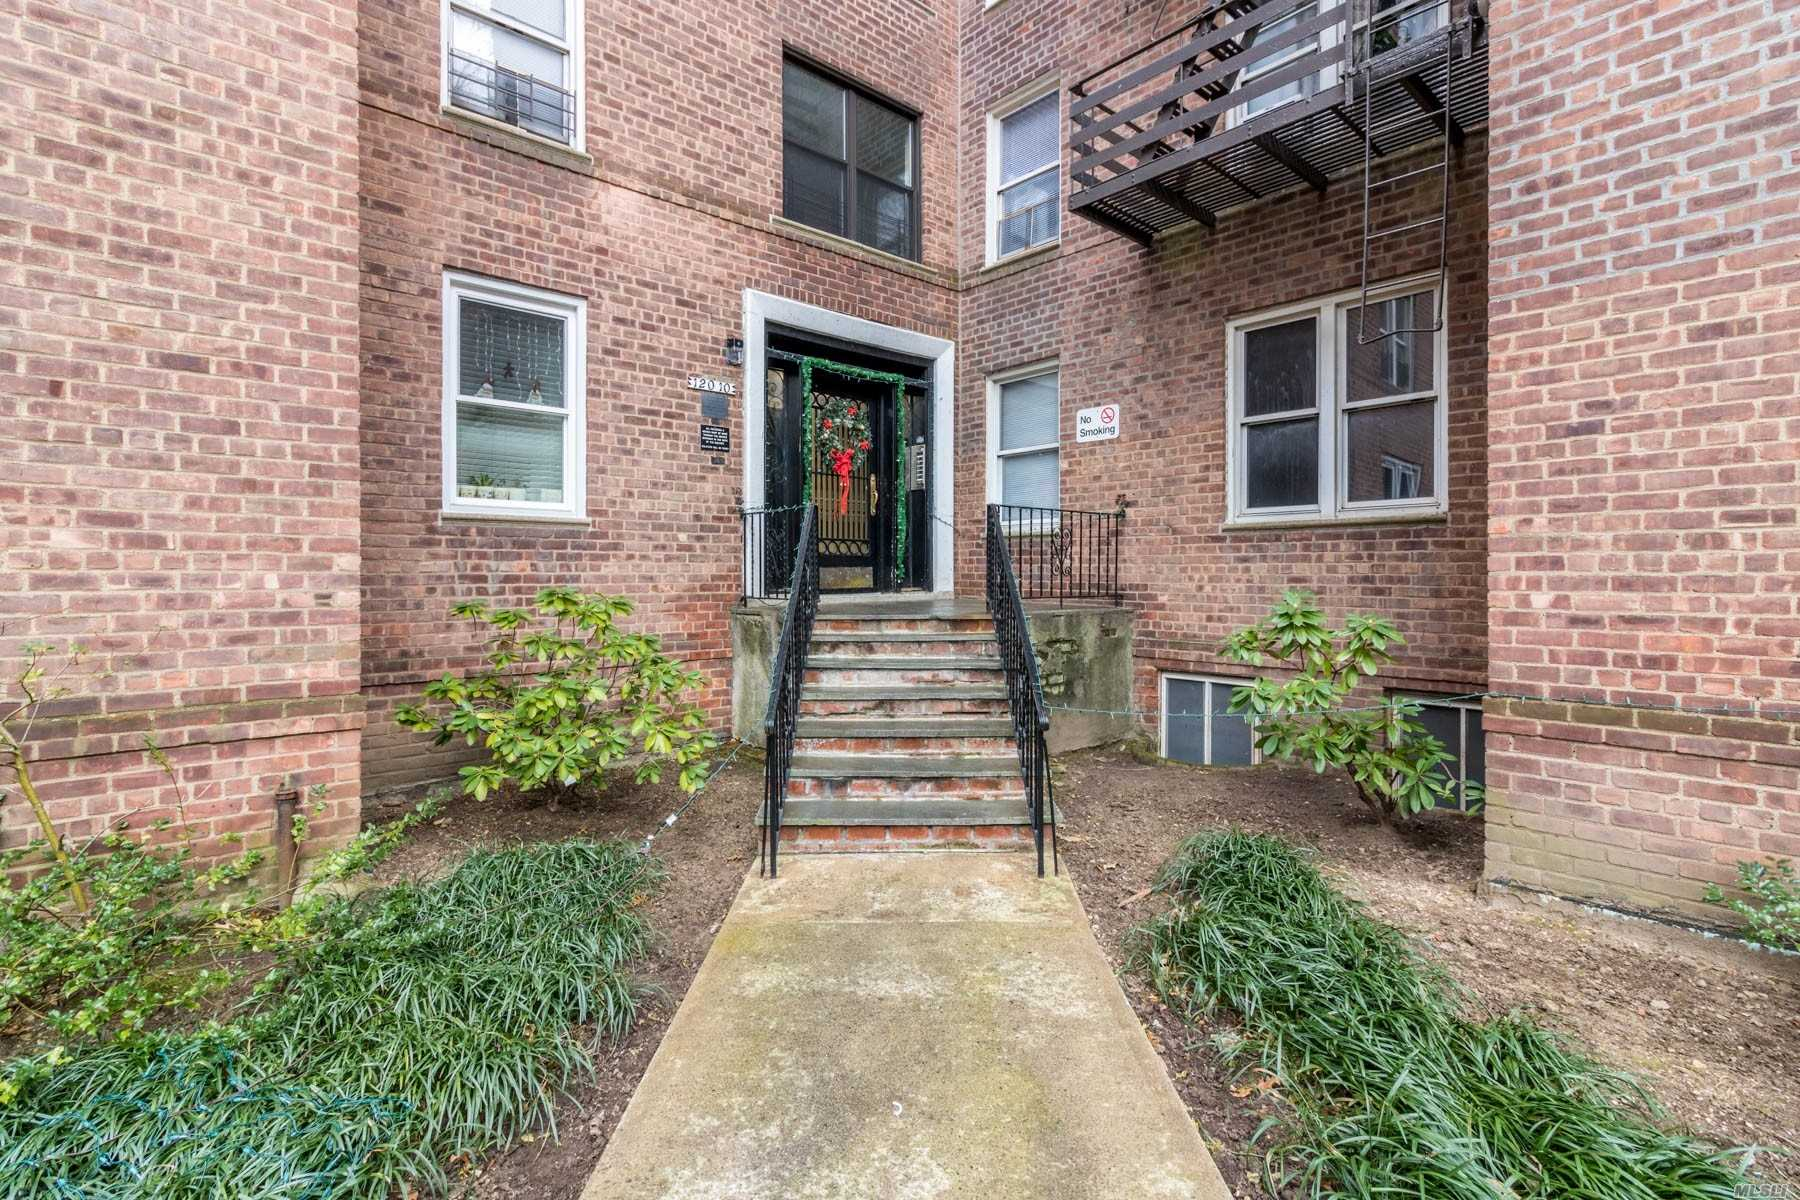 Newly Renovated True 2 Bedroom Co-Op. Hardwood Floors Throughout Granite Countertop. Ss Appliances, Modern Bath With Jetted Tub. Lots Of Closets. Walking Distance To Trains, Buses And Shopping. Laundry In Building.